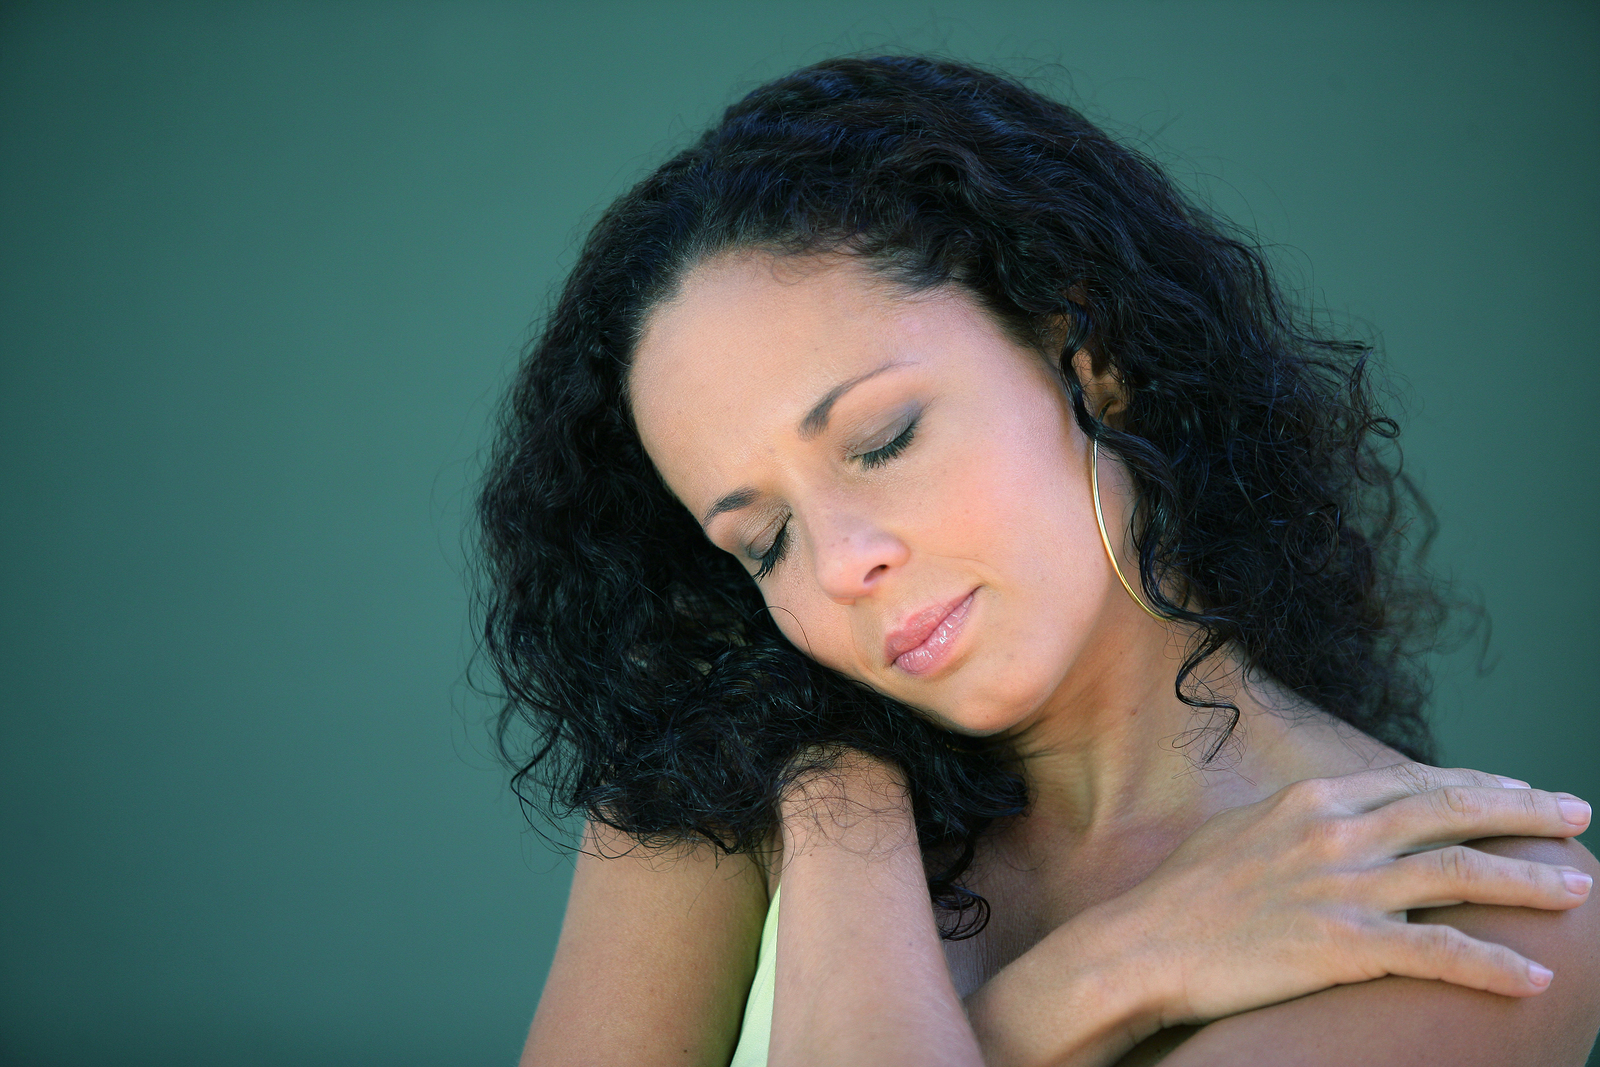 Symptoms of Fibromyalgia and How Chiropractic Care Can Help